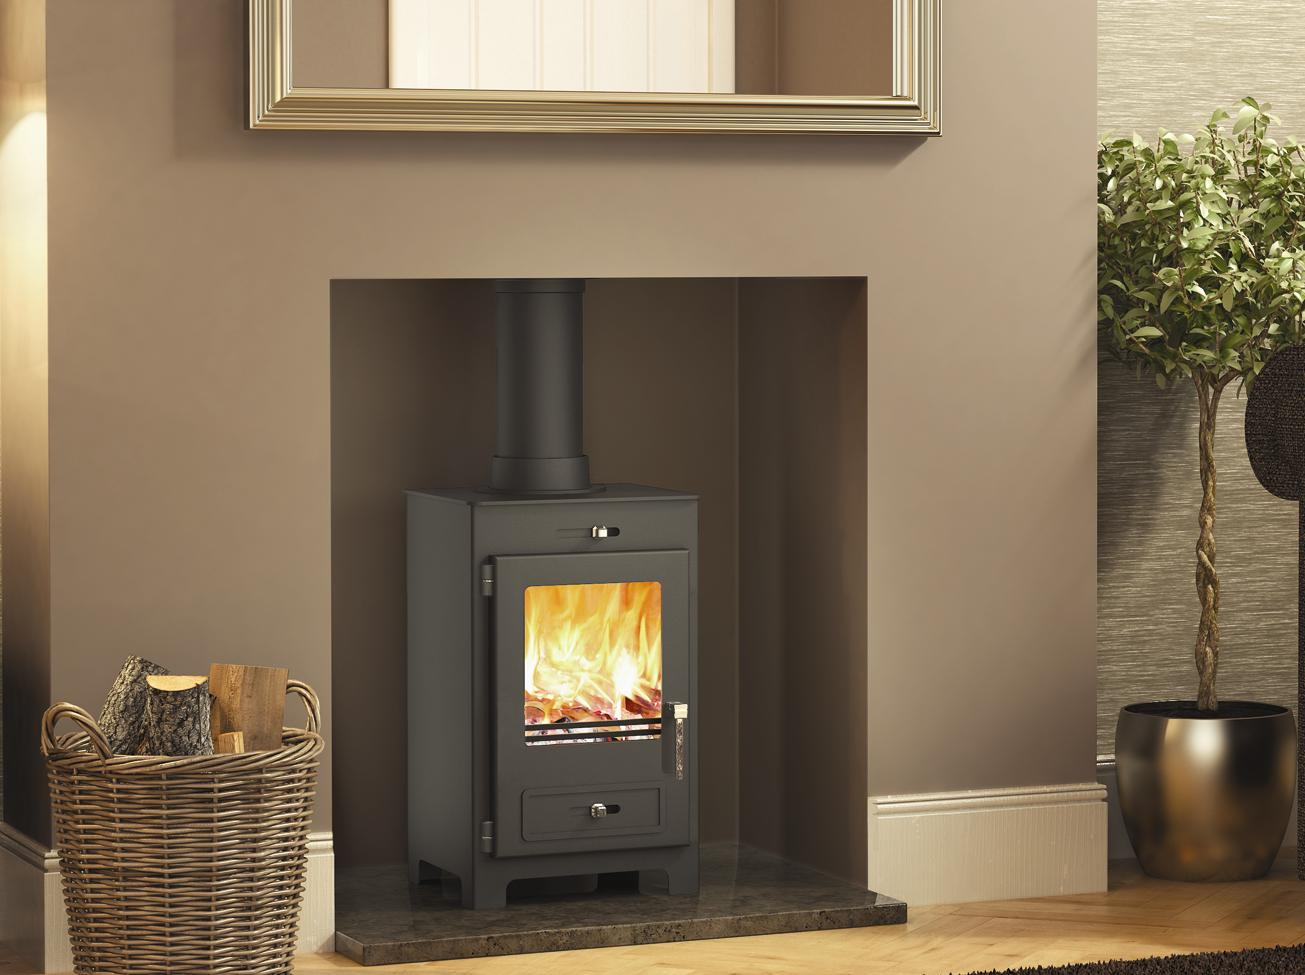 Wood Burning Stove Advantages That You Must Consider